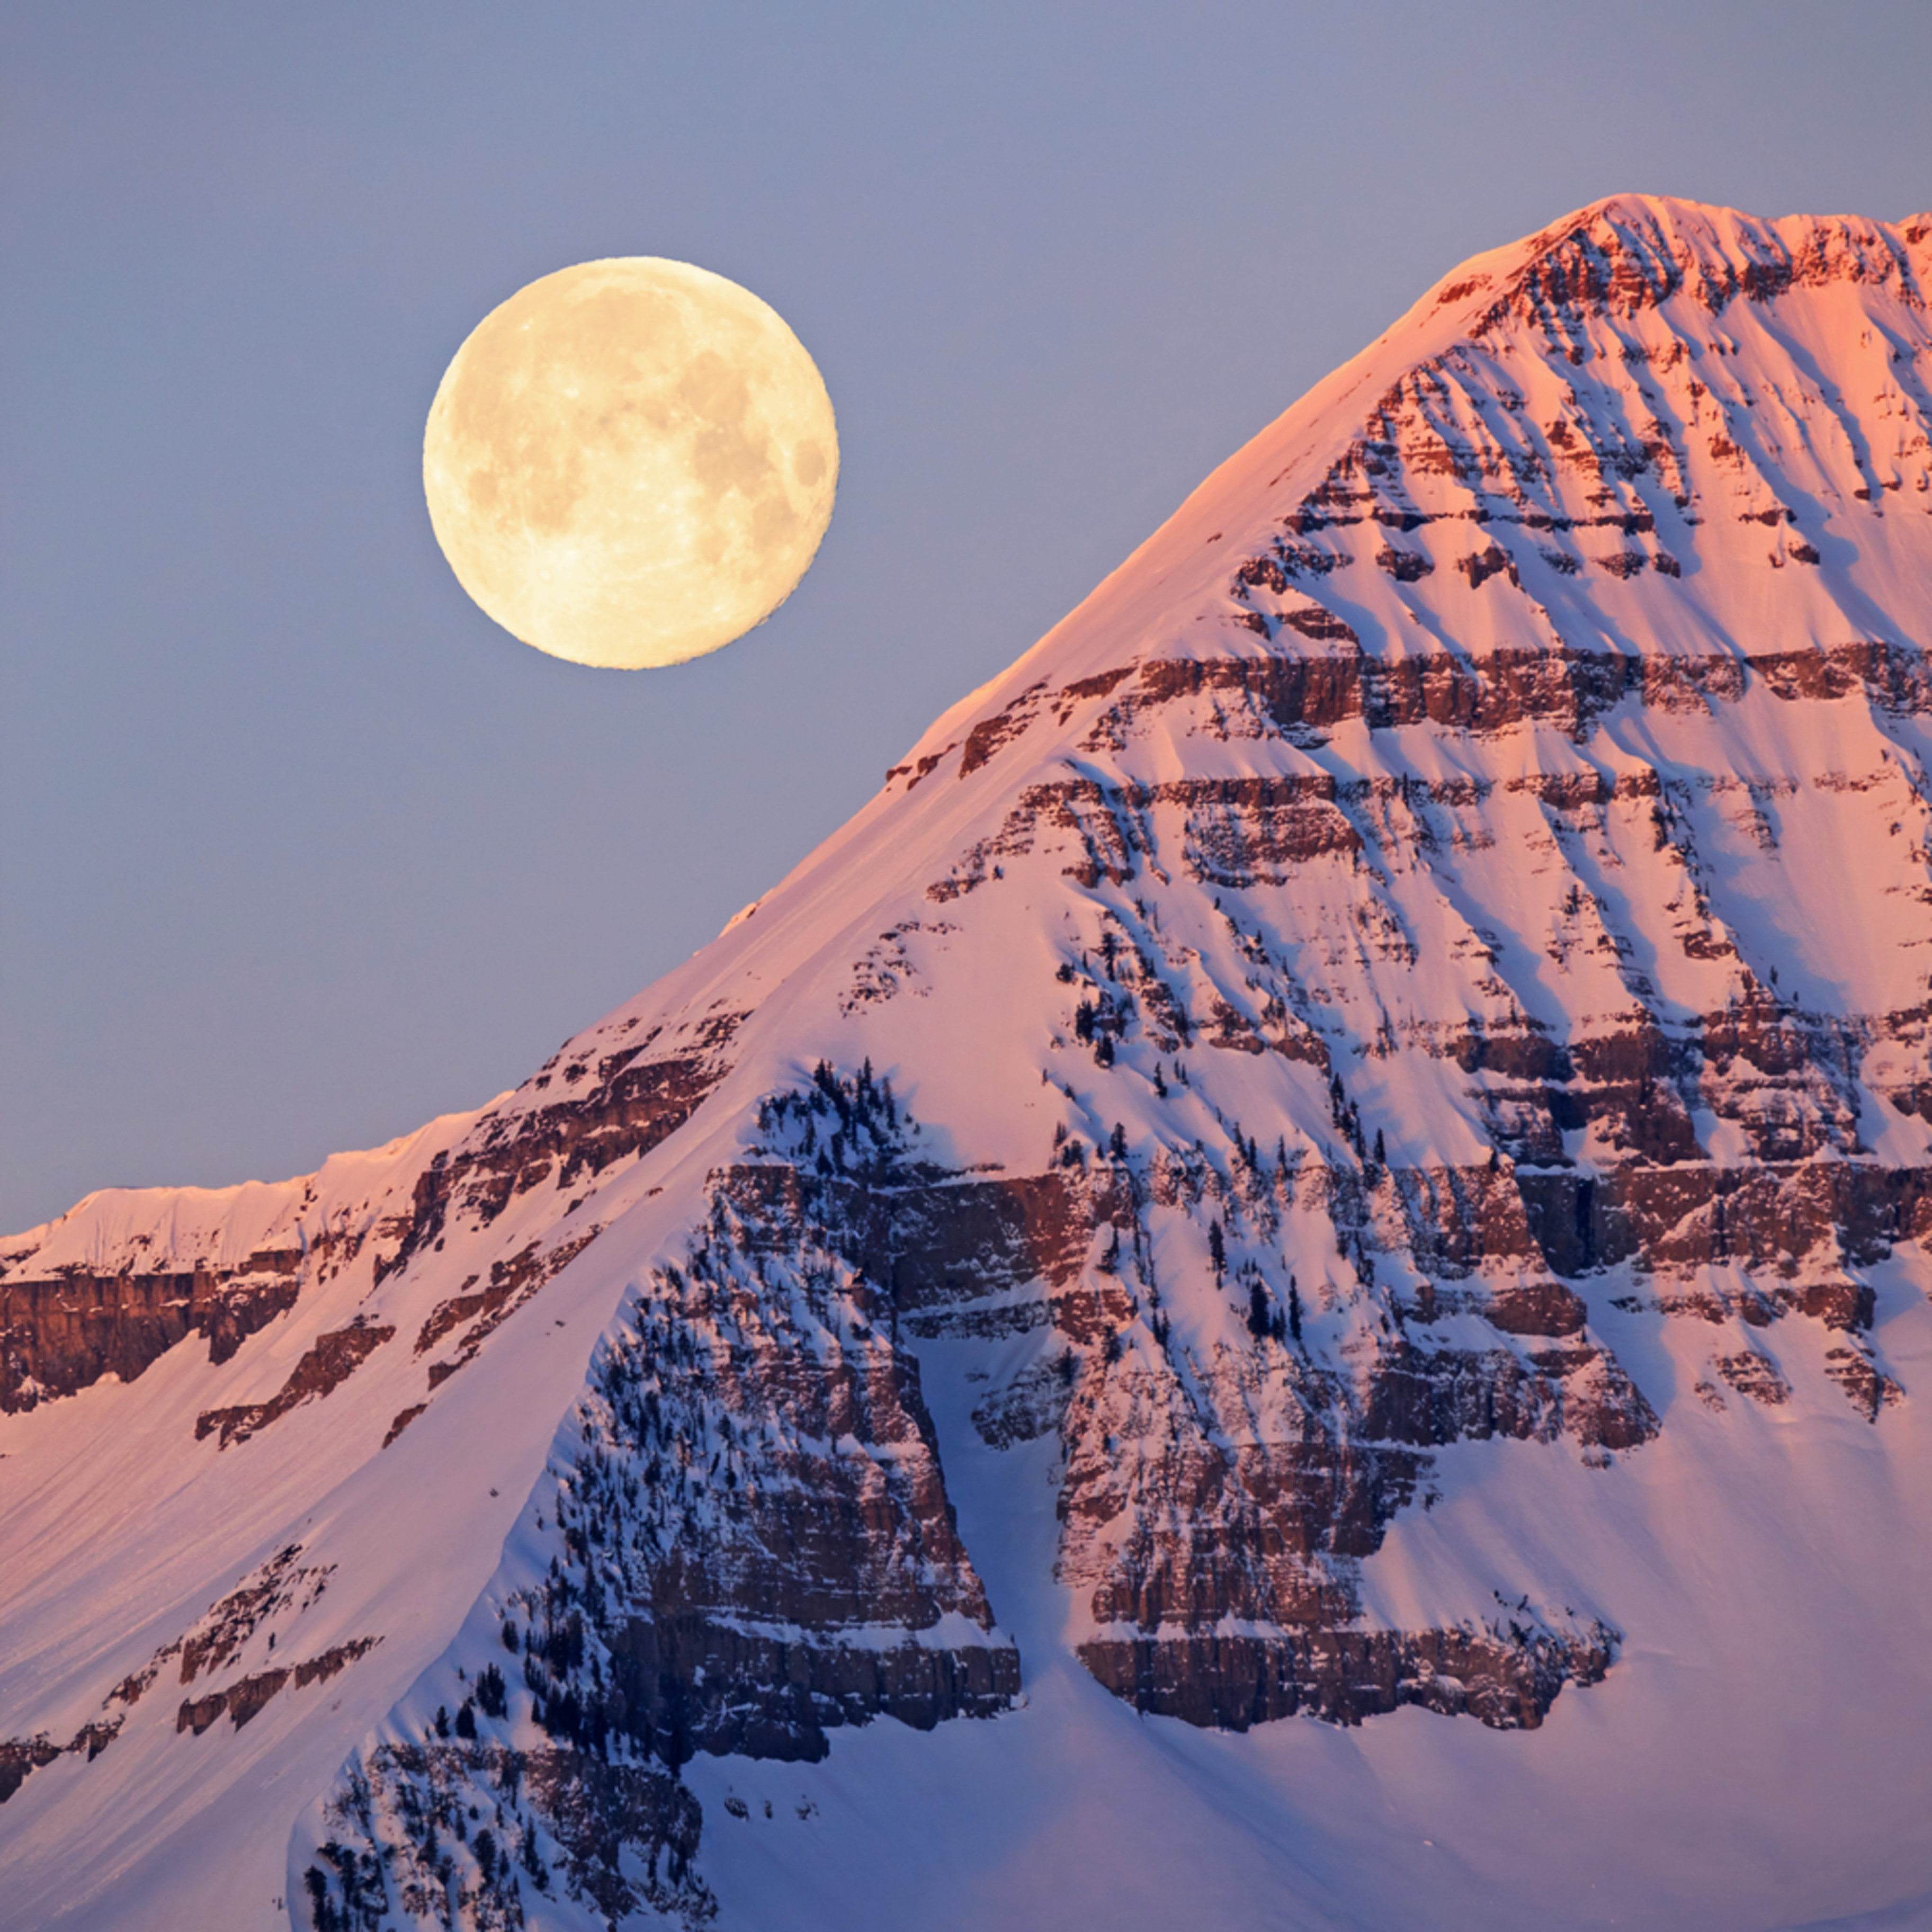 Timpanogos moonset composite dq26wp